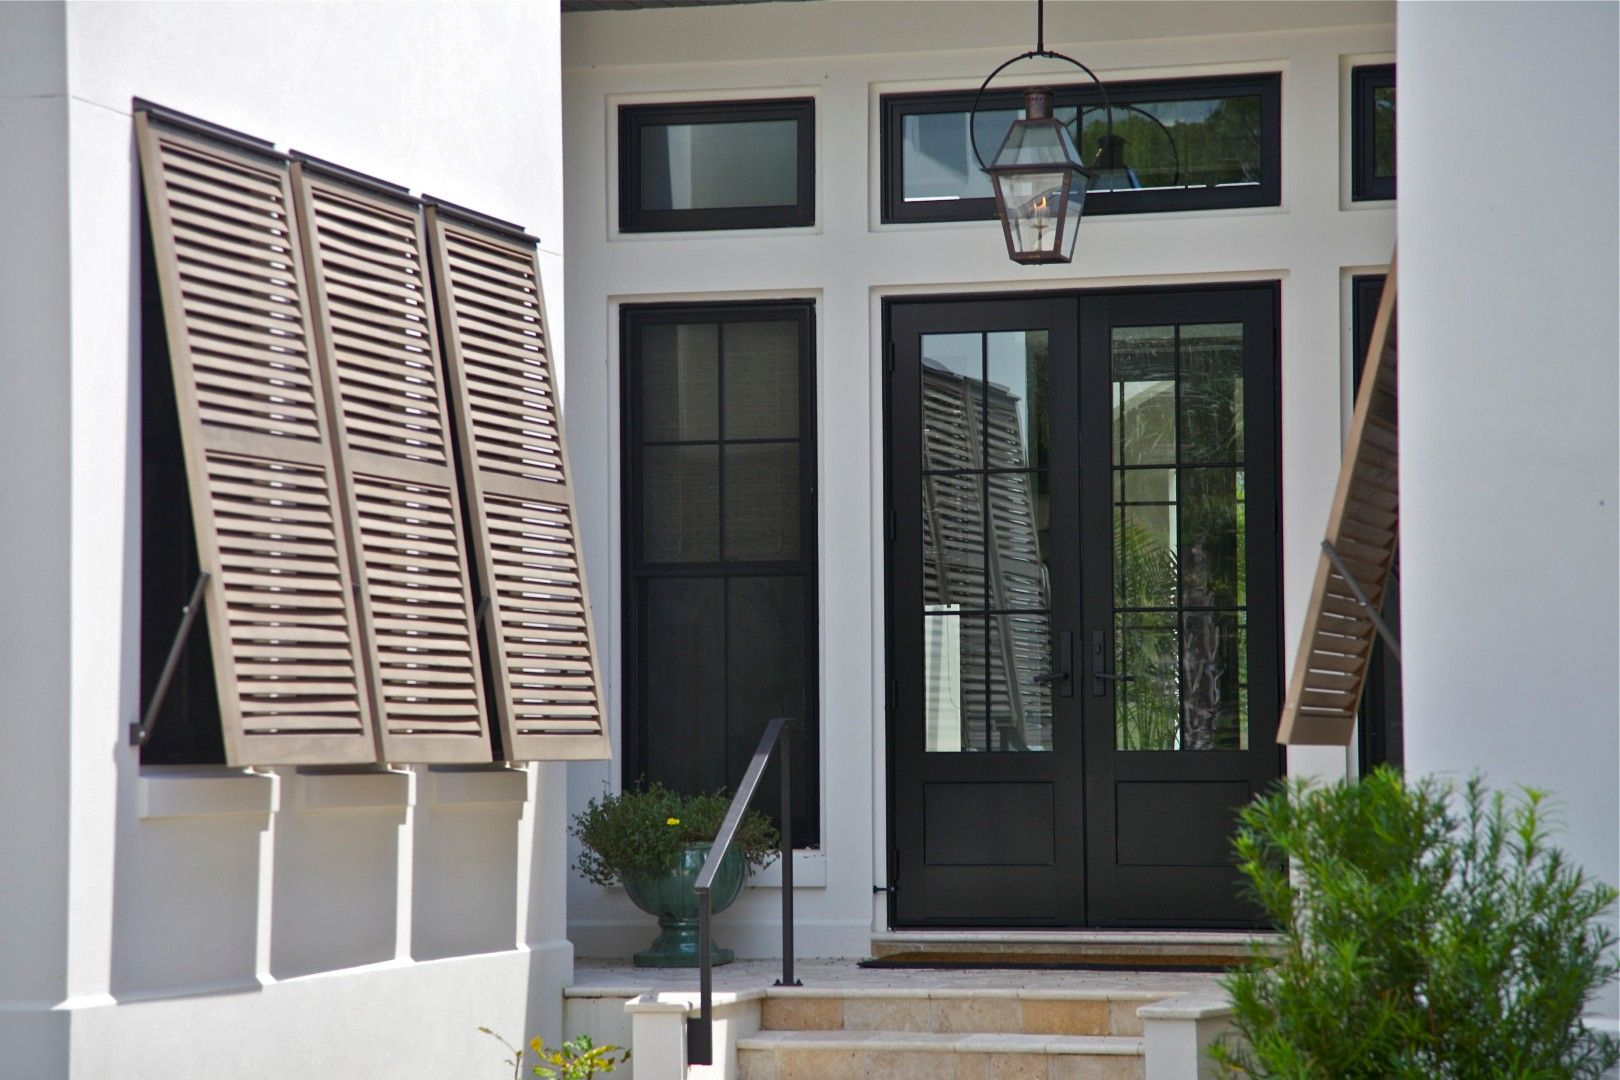 Beautiful Doors For Homes Marvin Windows And Aluminum Clad Front Door With Beautiful